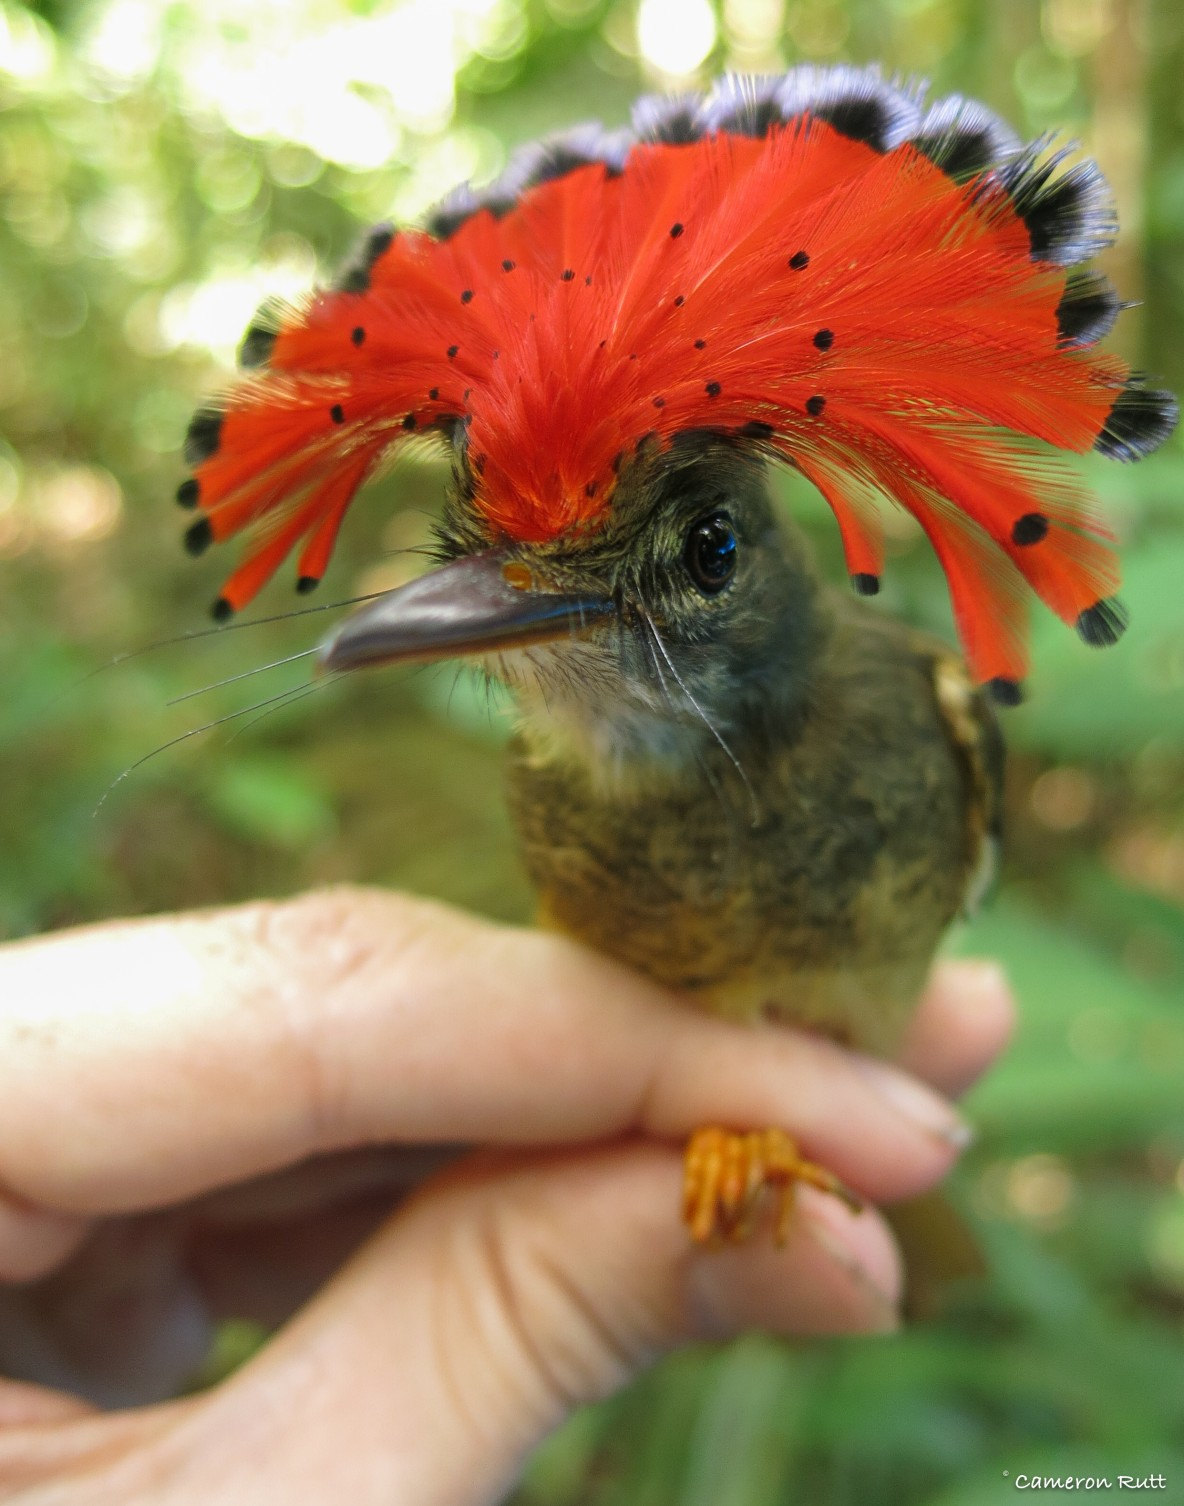 Amazonian Royal Flycatcher, male, held by Cameron Rutt of Nemesis Bird